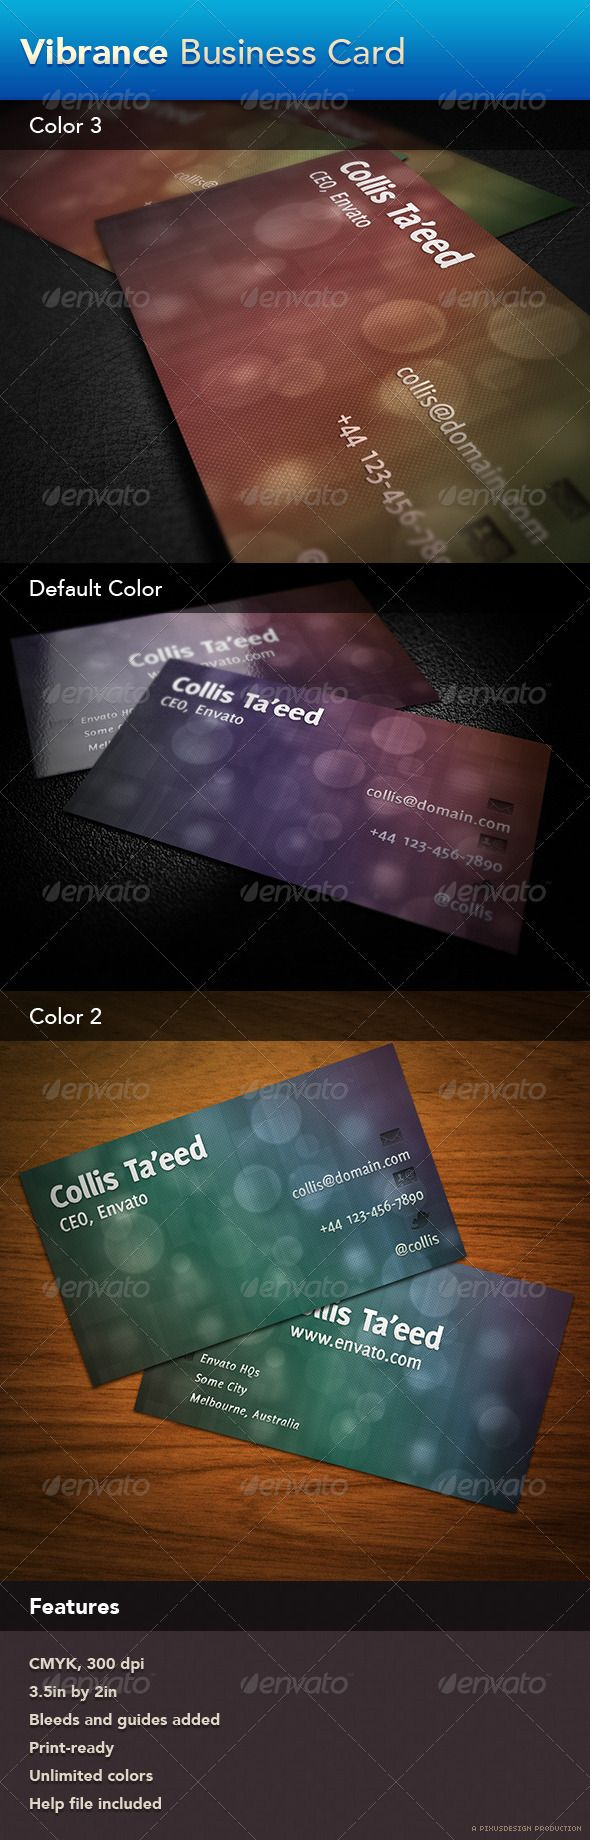 123 Easy Print Business Cards | Best Business Cards